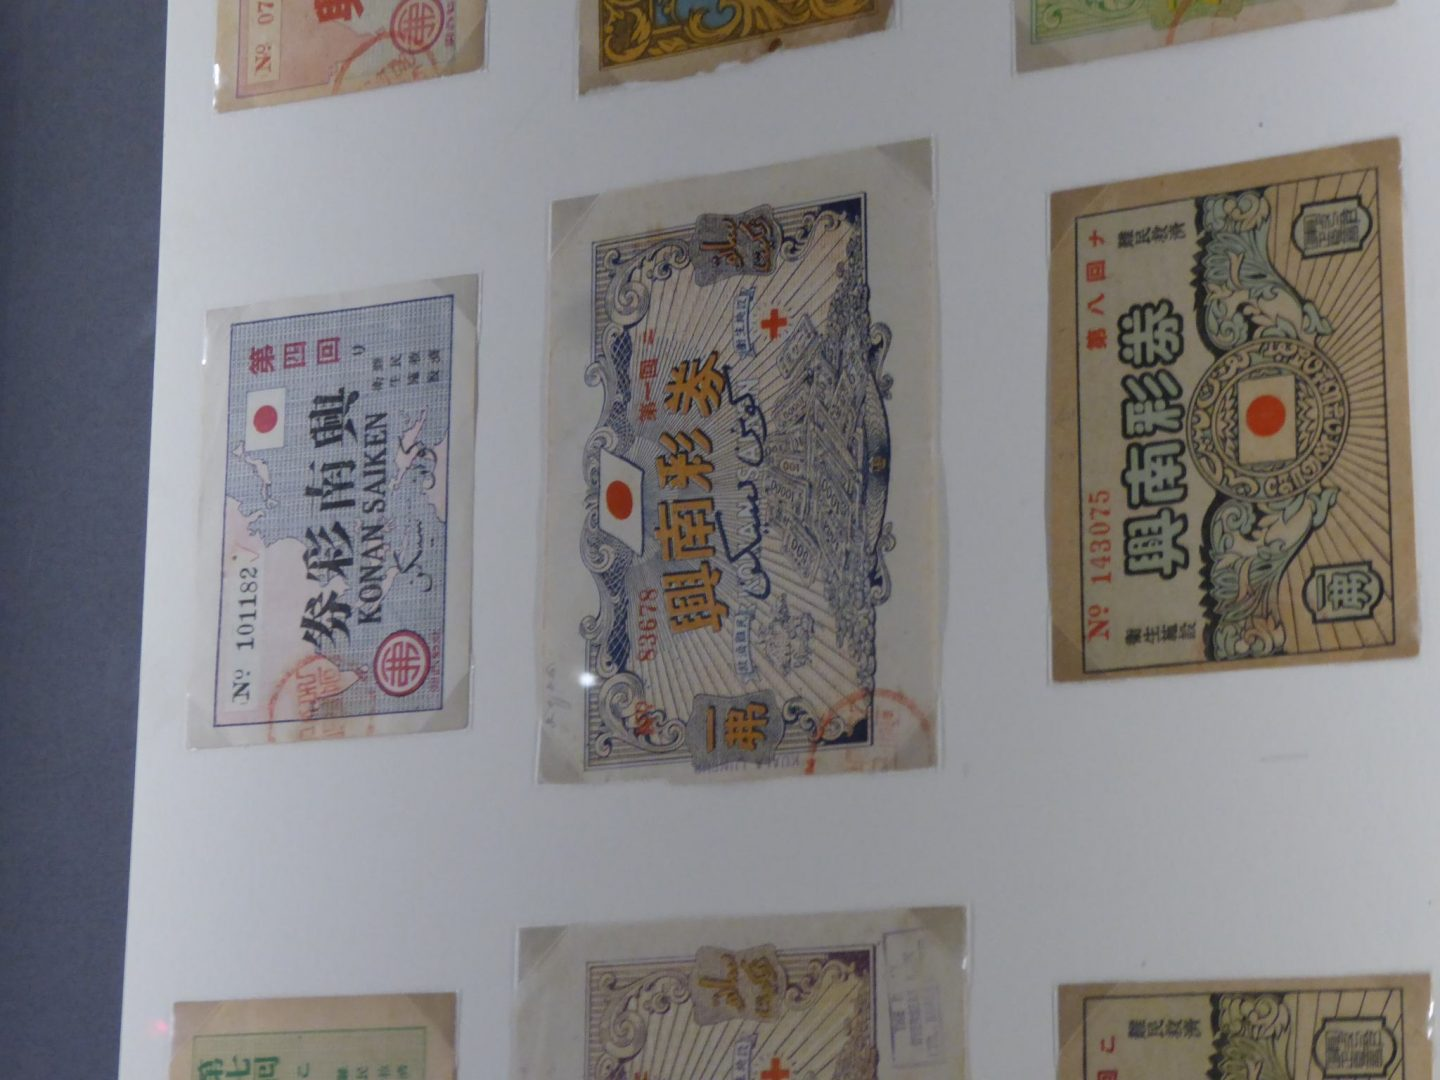 Money used under the Japanese Occupation, 1942-1945 - on display at the Singapore National Museum